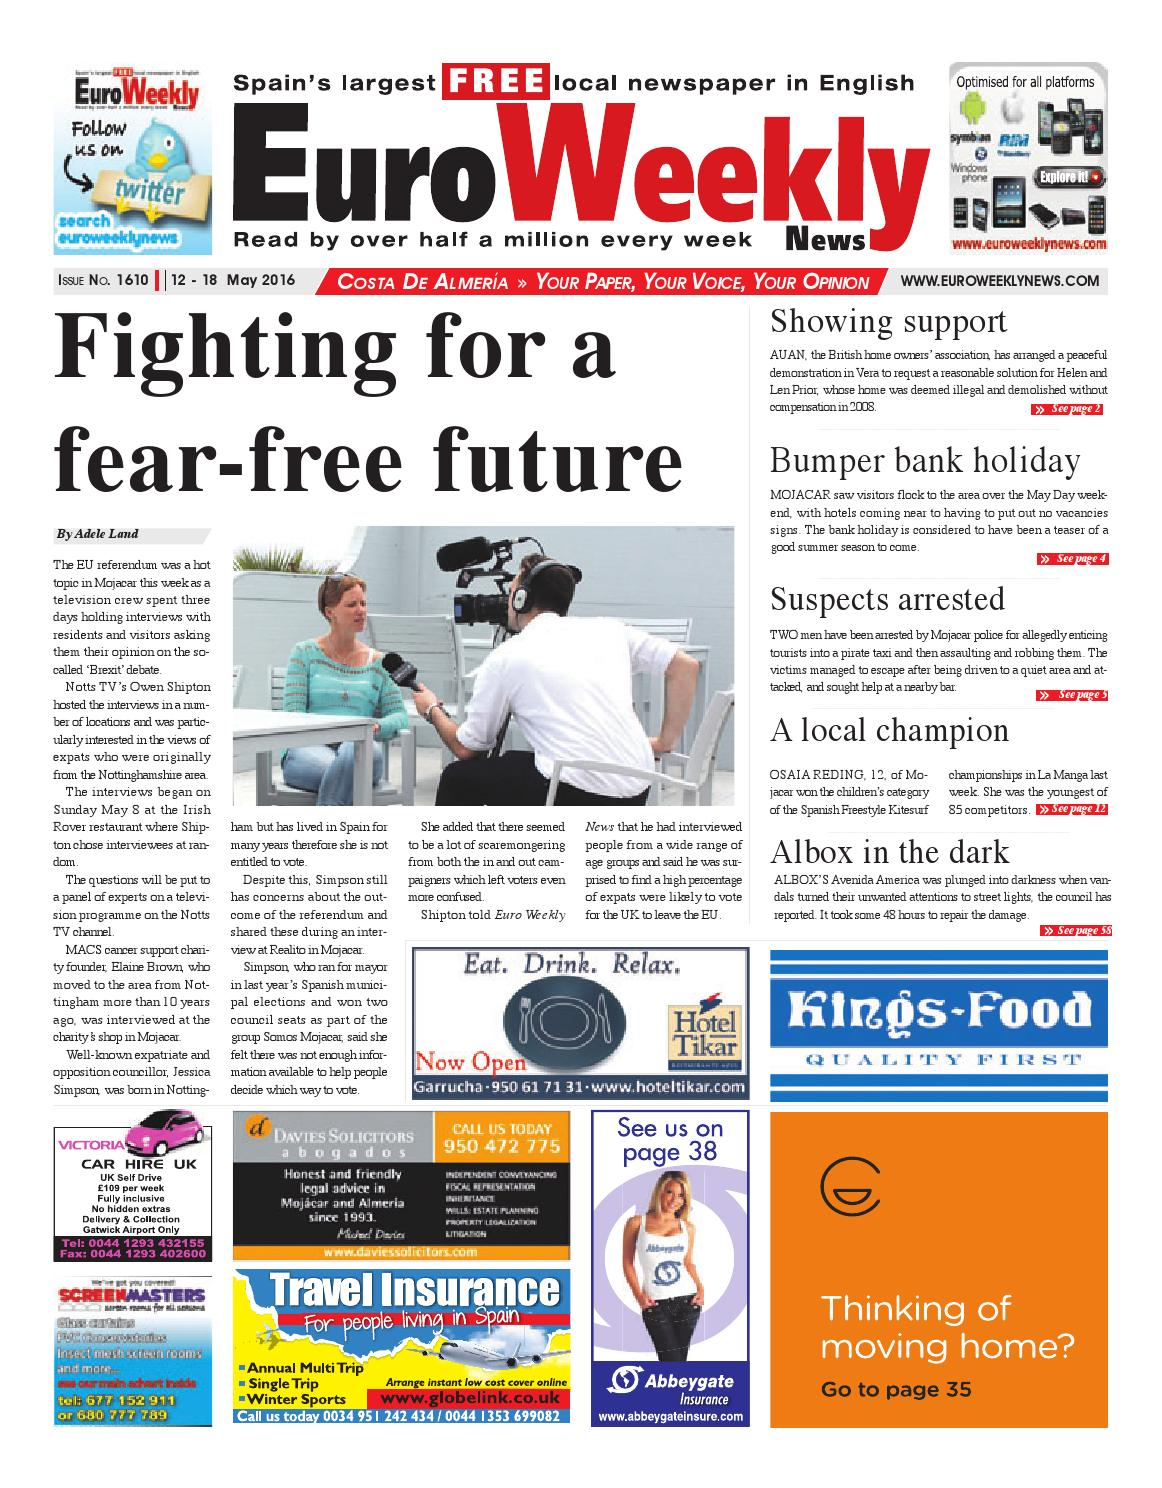 Euro Weekly News - Costa de Almeria 12 - 18 May 2016 Issue 1610 by ...